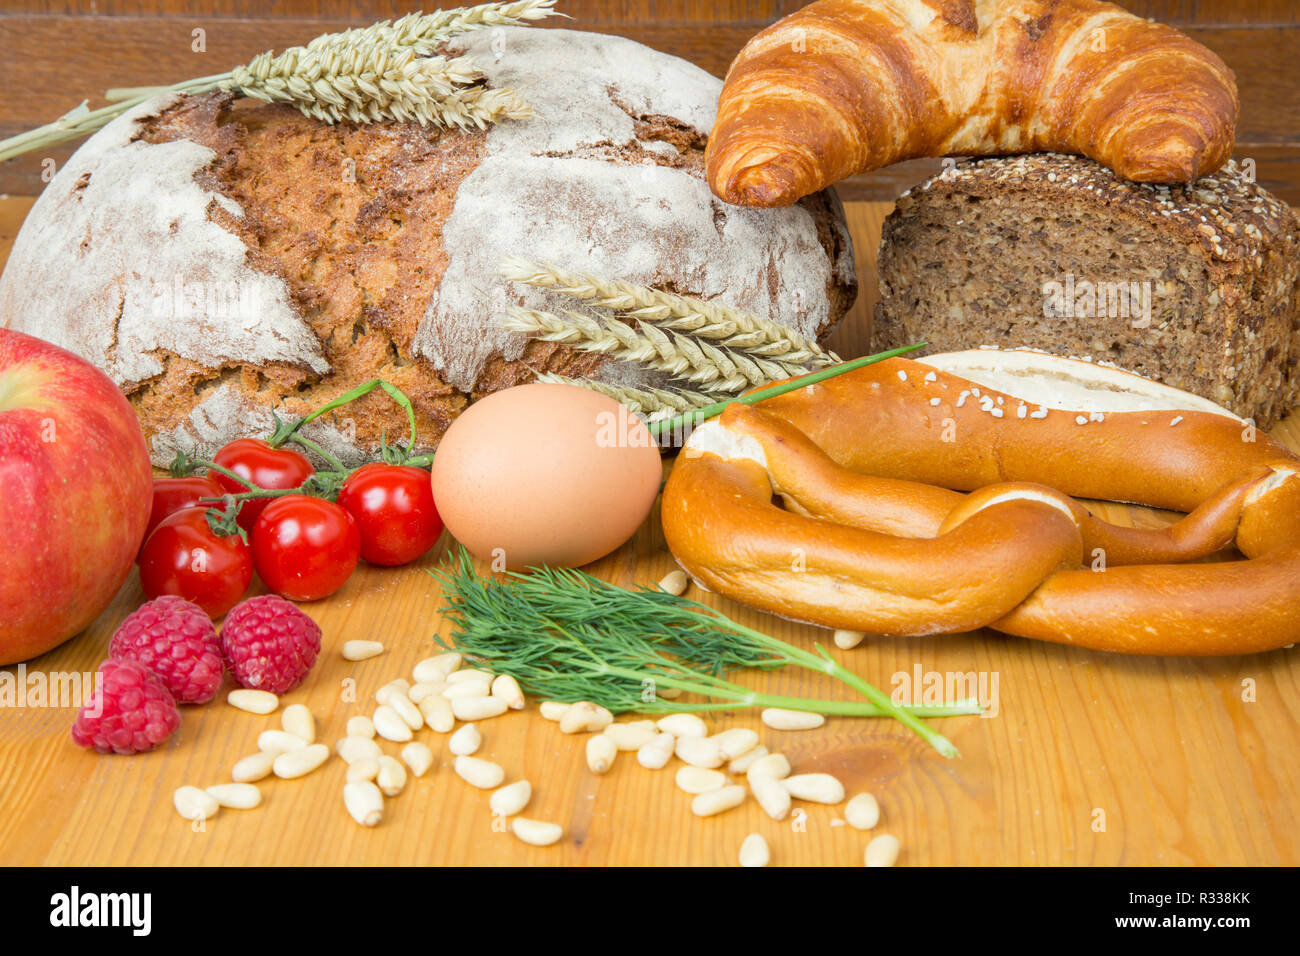 different kinds of bread and a variety of foods - Stock Image